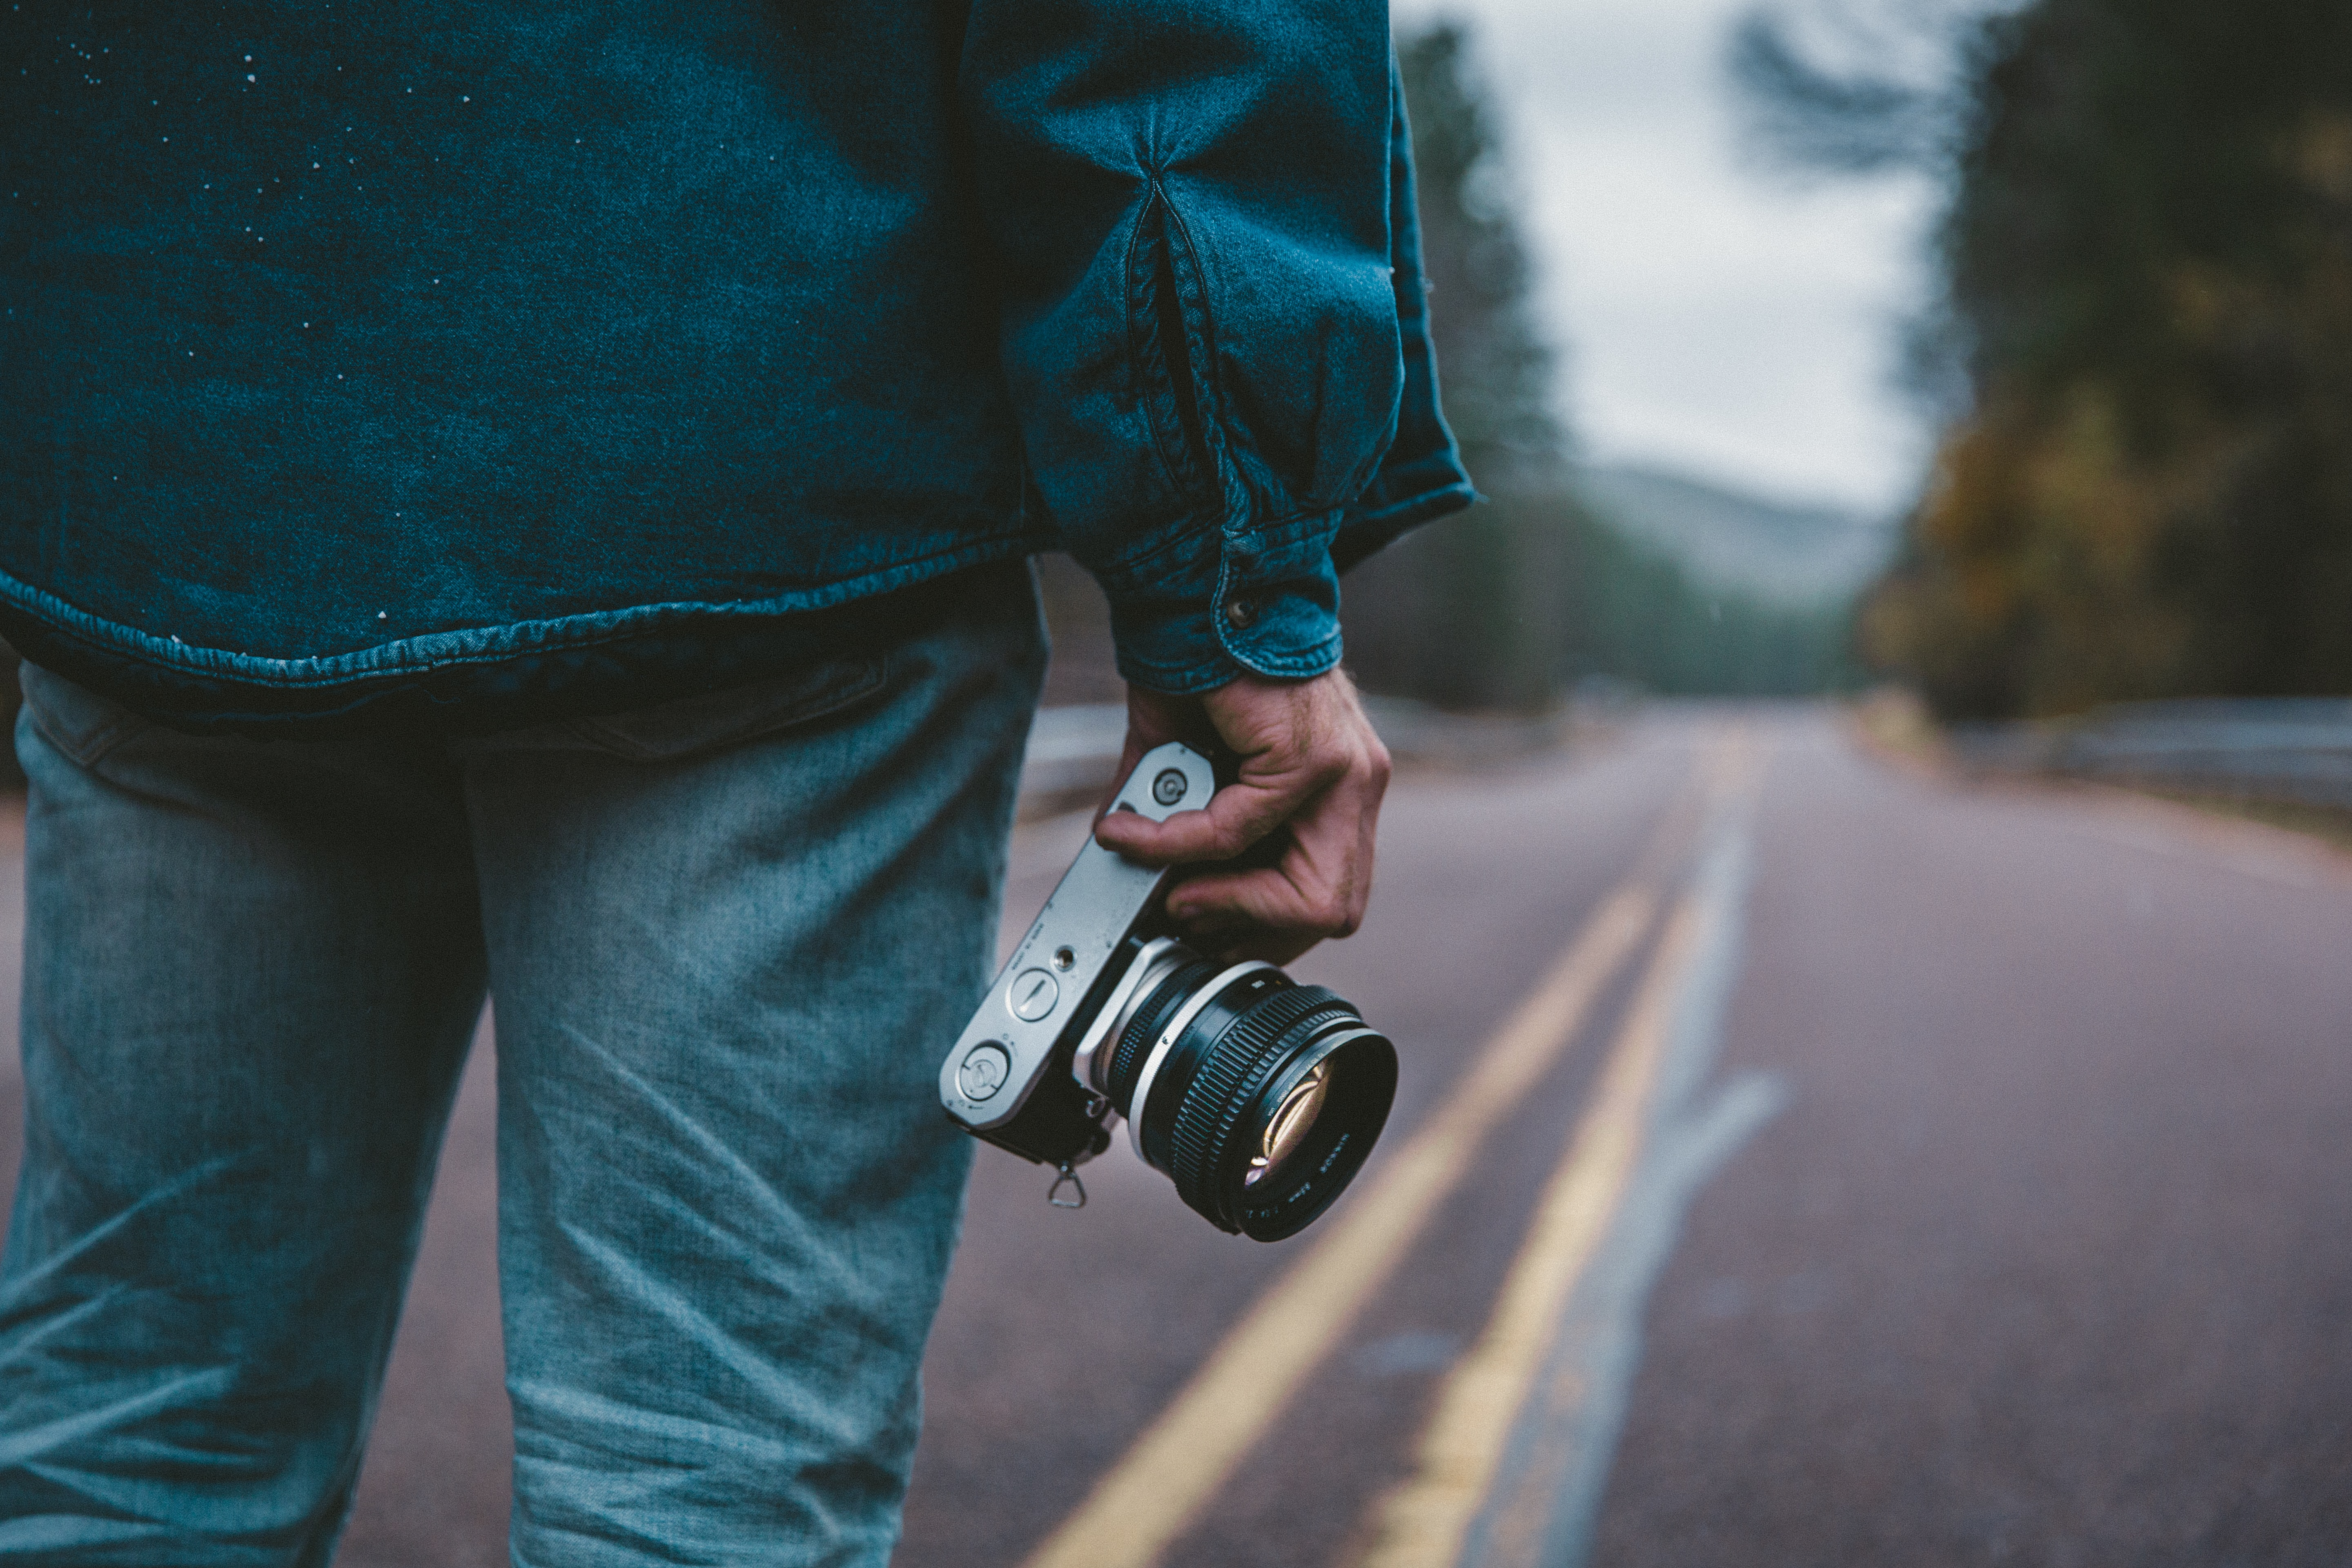 A man in denim clothing stands on an empty paved road holding a camera.